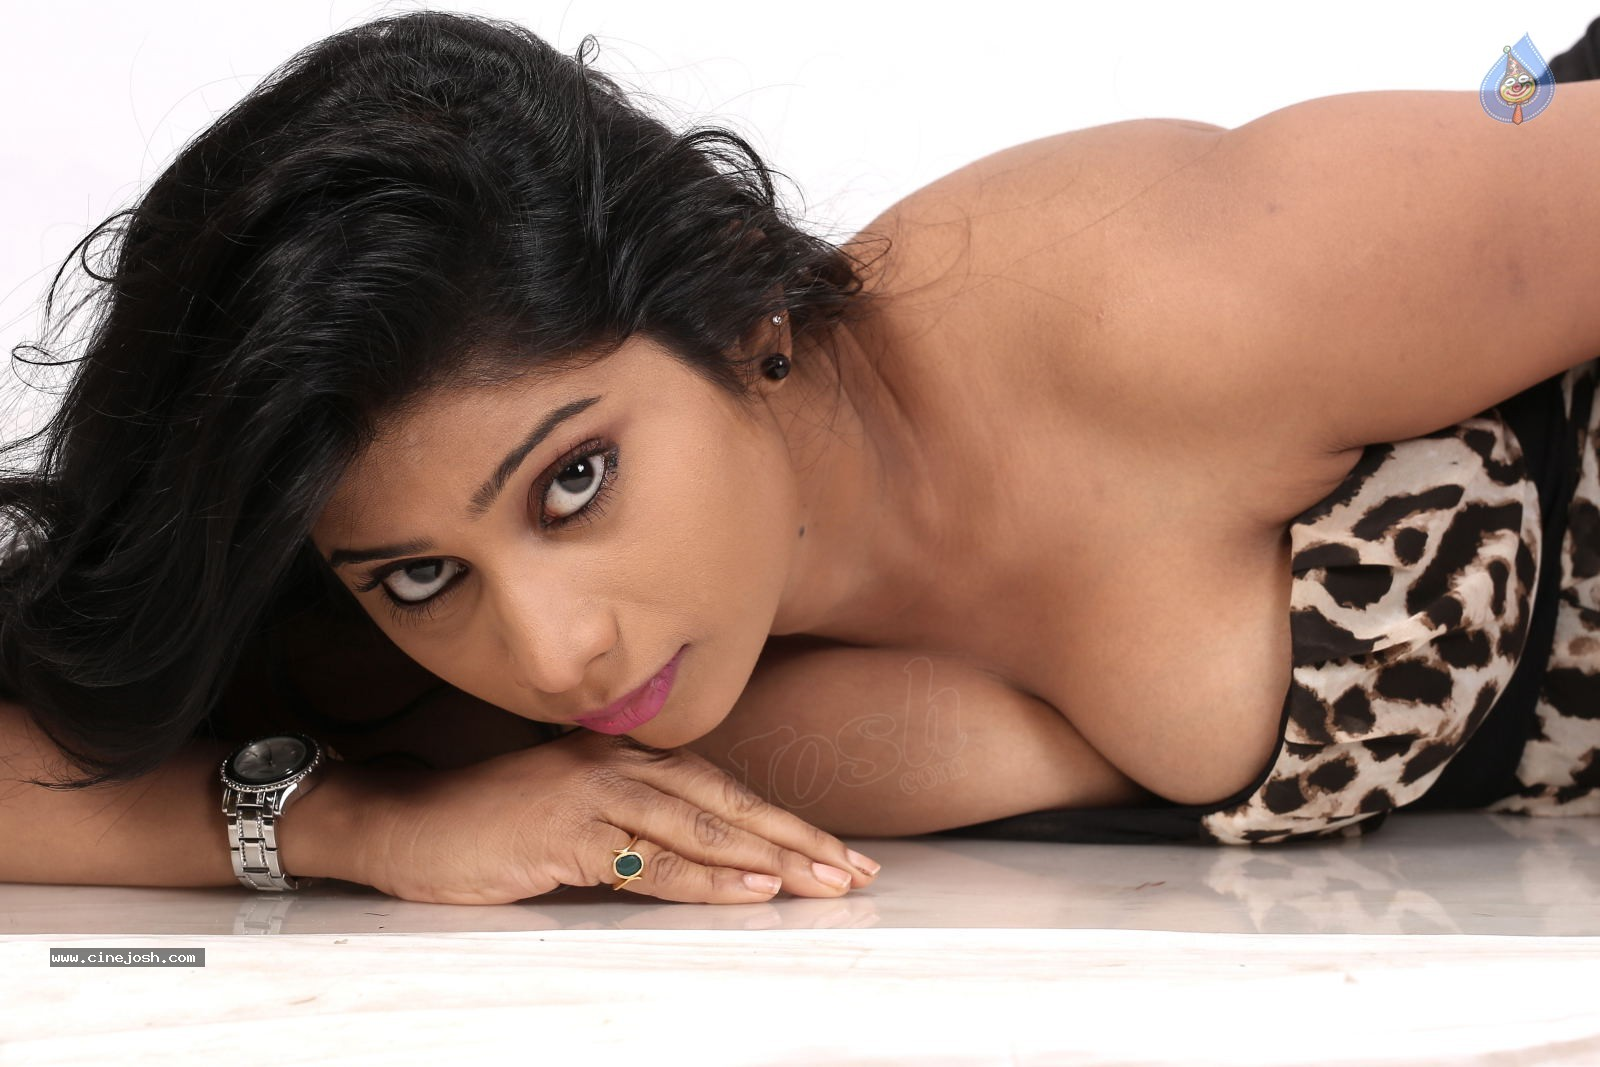 Hot nude boobs images of telugu actress